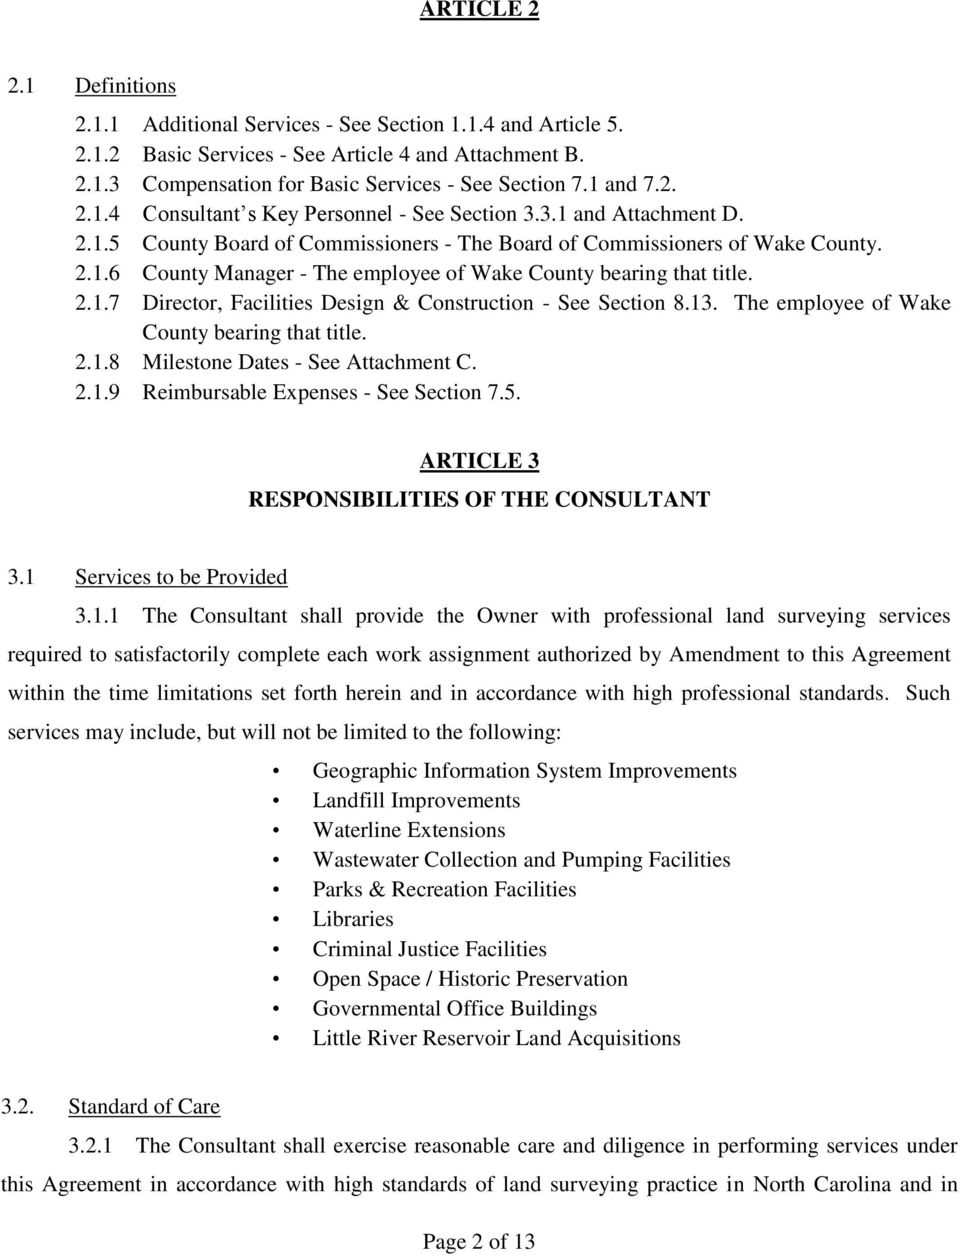 2.1.7 Director, Facilities Design & Construction - See Section 8.13. The employee of Wake County bearing that title. 2.1.8 Milestone Dates - See Attachment C. 2.1.9 Reimbursable Expenses - See Section 7.